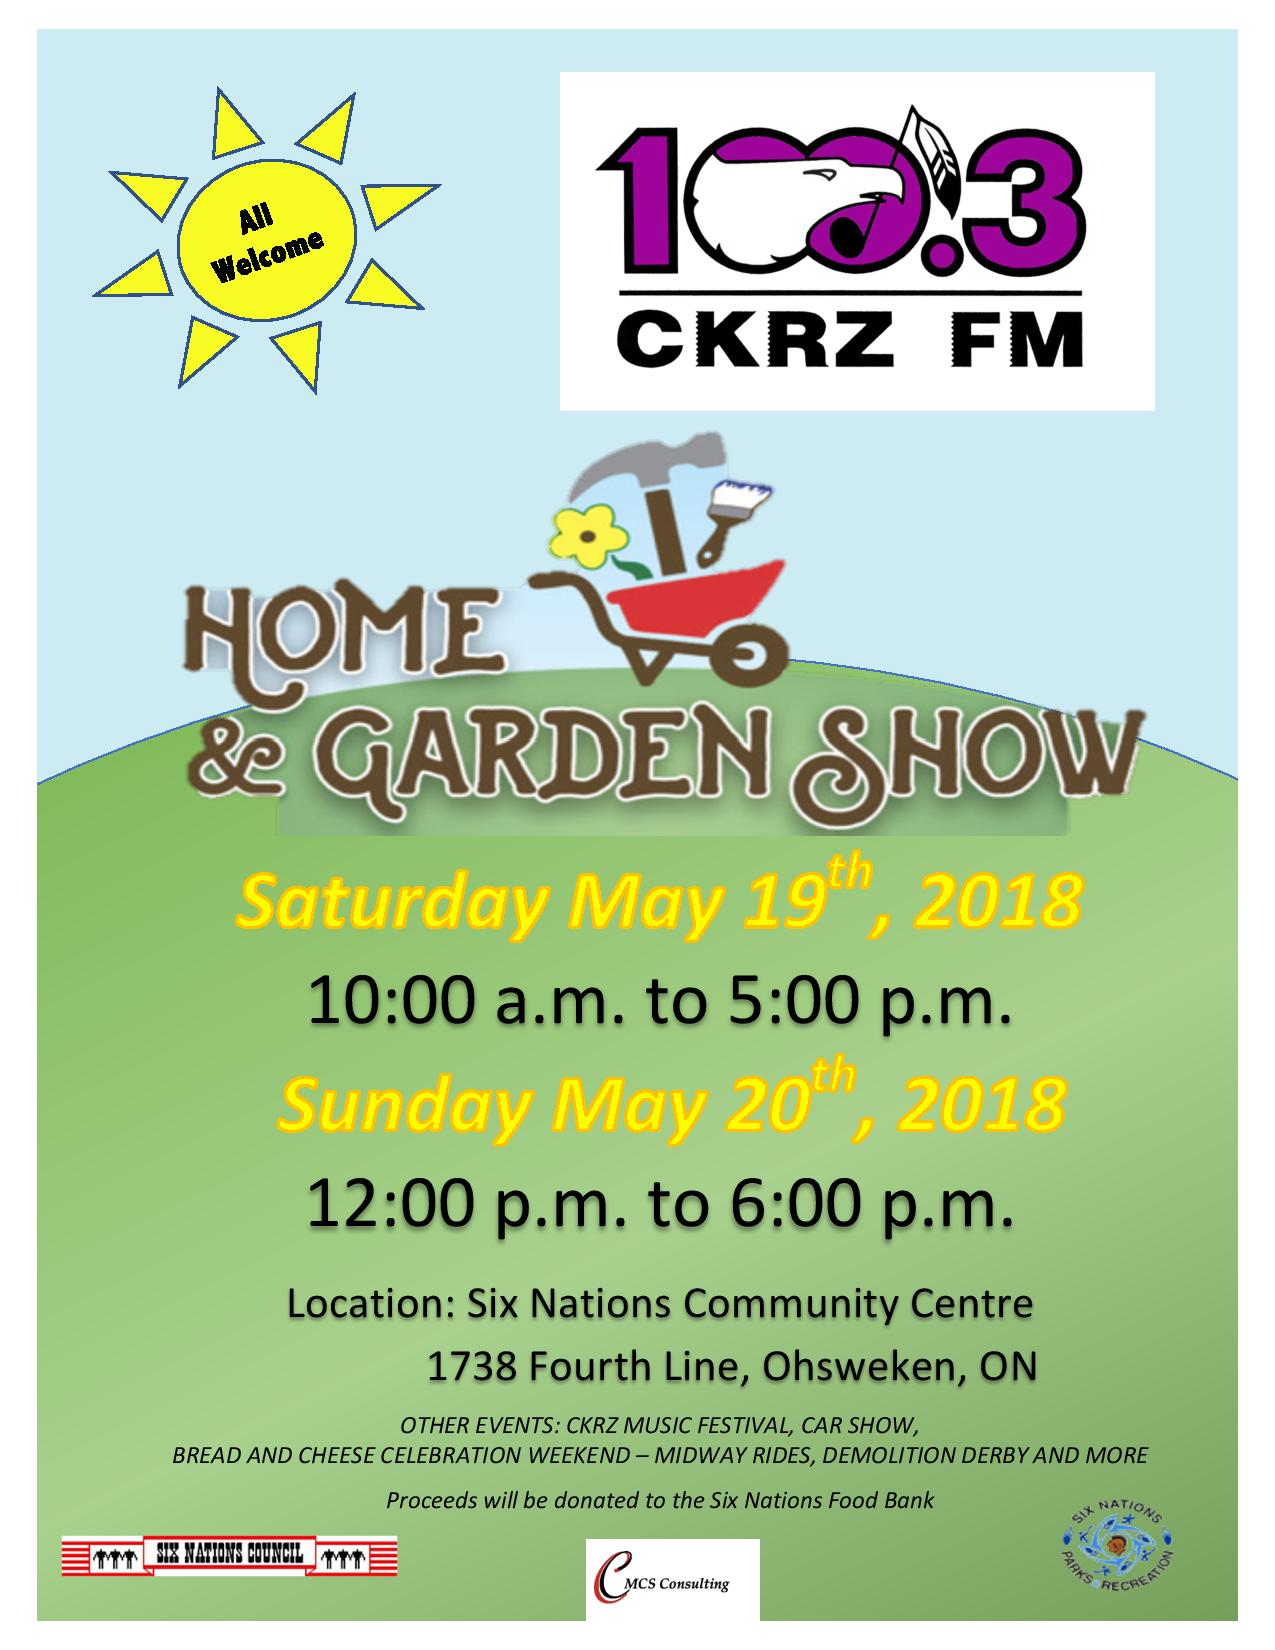 Home and Garden show flyer 4 version-page-001